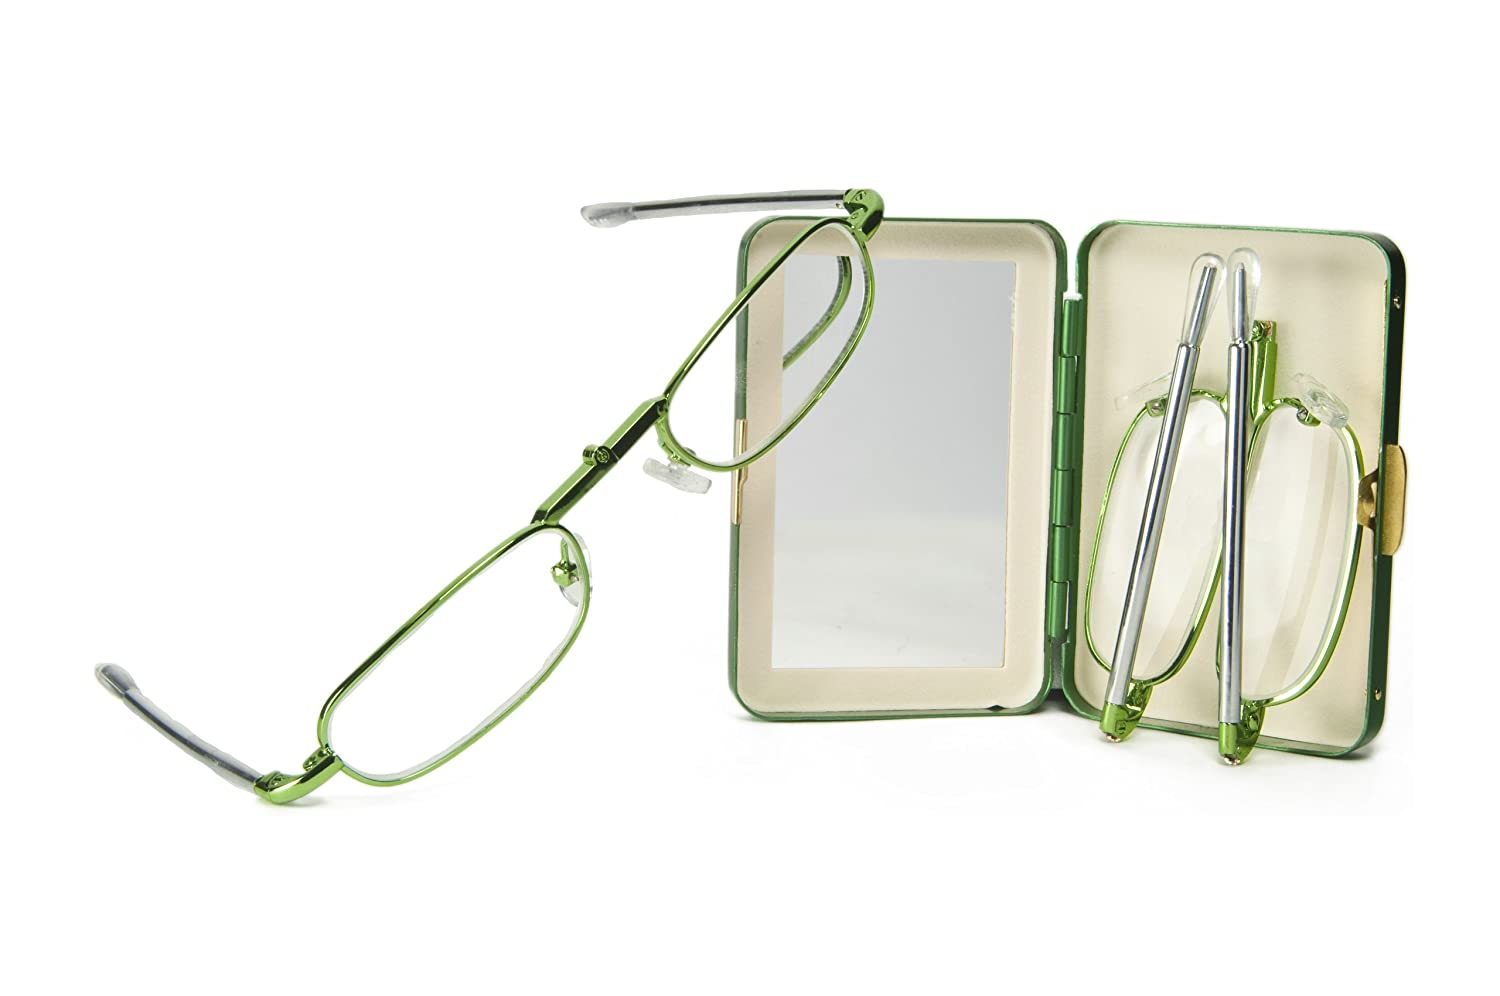 Pocket Eyes Folding Reading Glasses with Case -- Unisex Design -- 8 Colors!